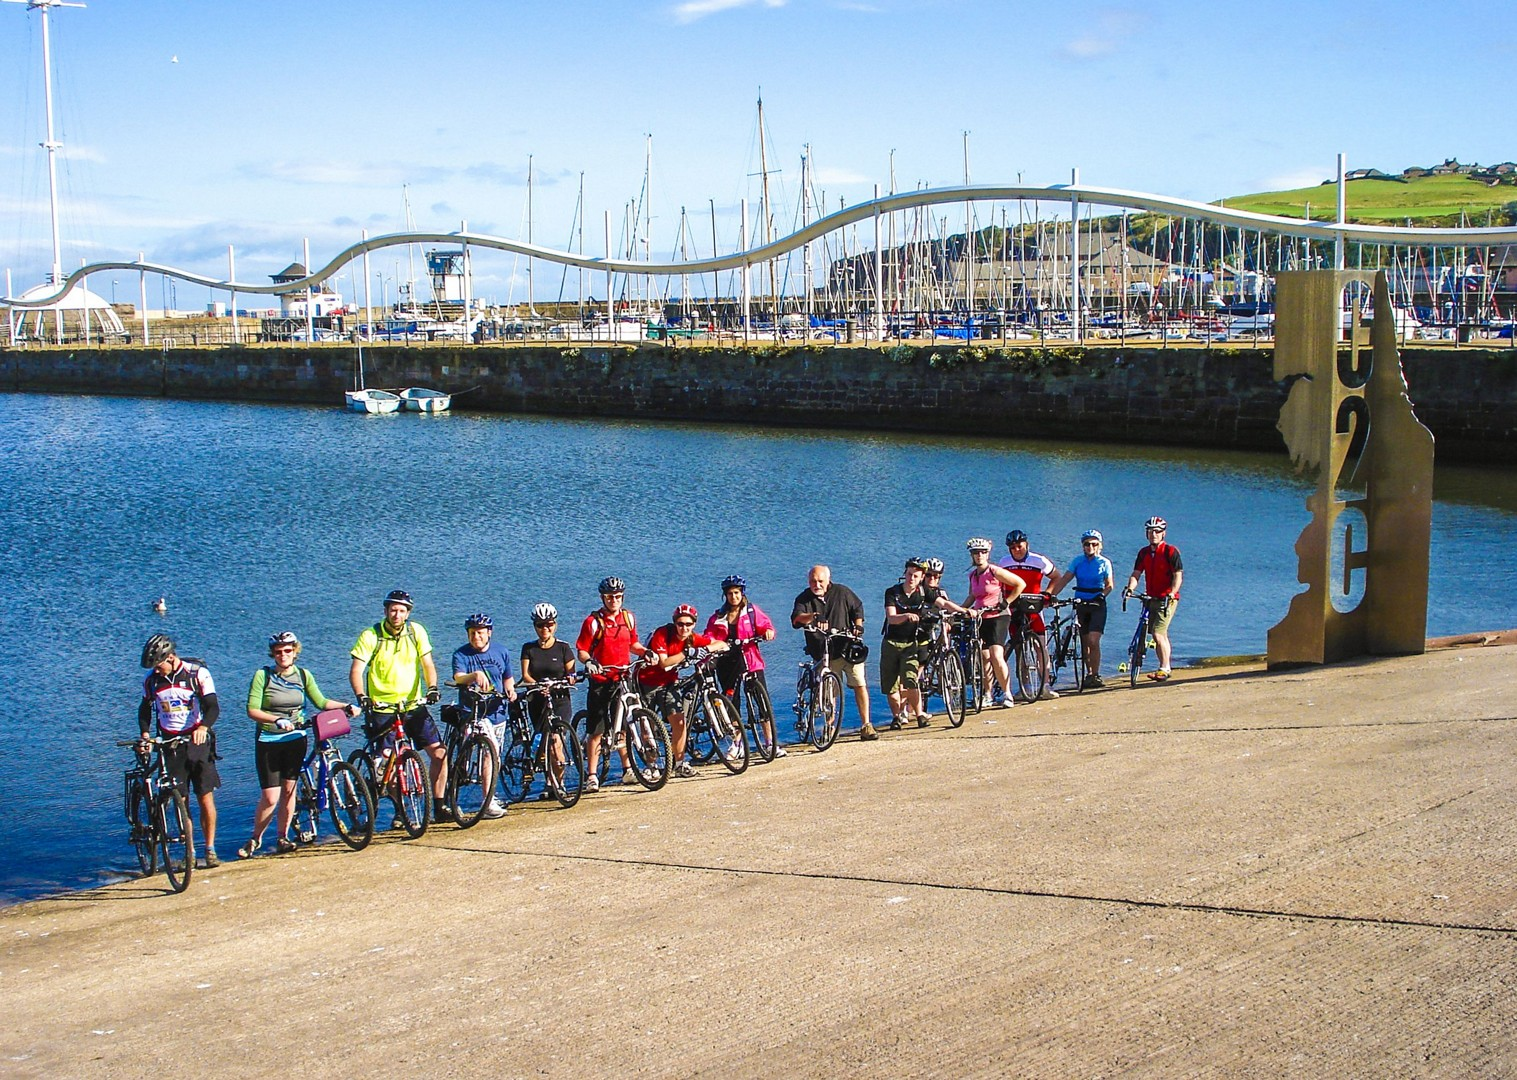 whitehaven-c2c-coast-to-coast-uk-cycling-tour.jpg - UK - C2C - Coast to Coast - Supported Leisure Cycling Holiday - Leisure Cycling